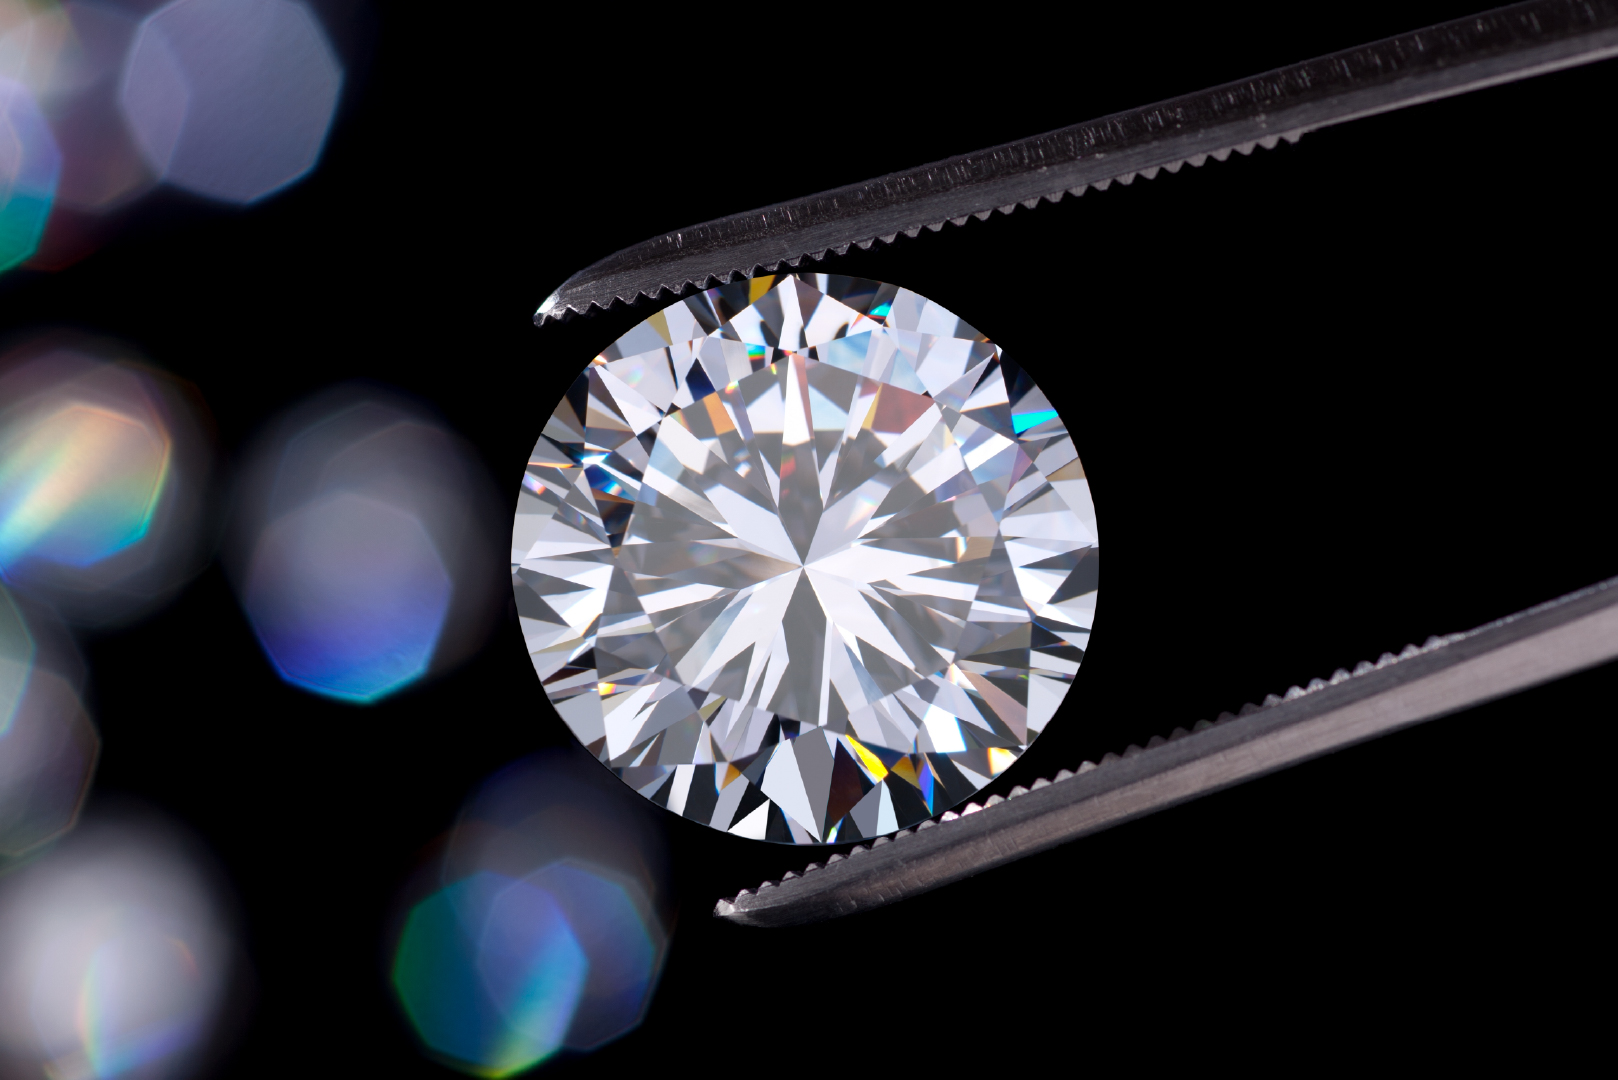 How to tell a diamond vs cubic zirconia